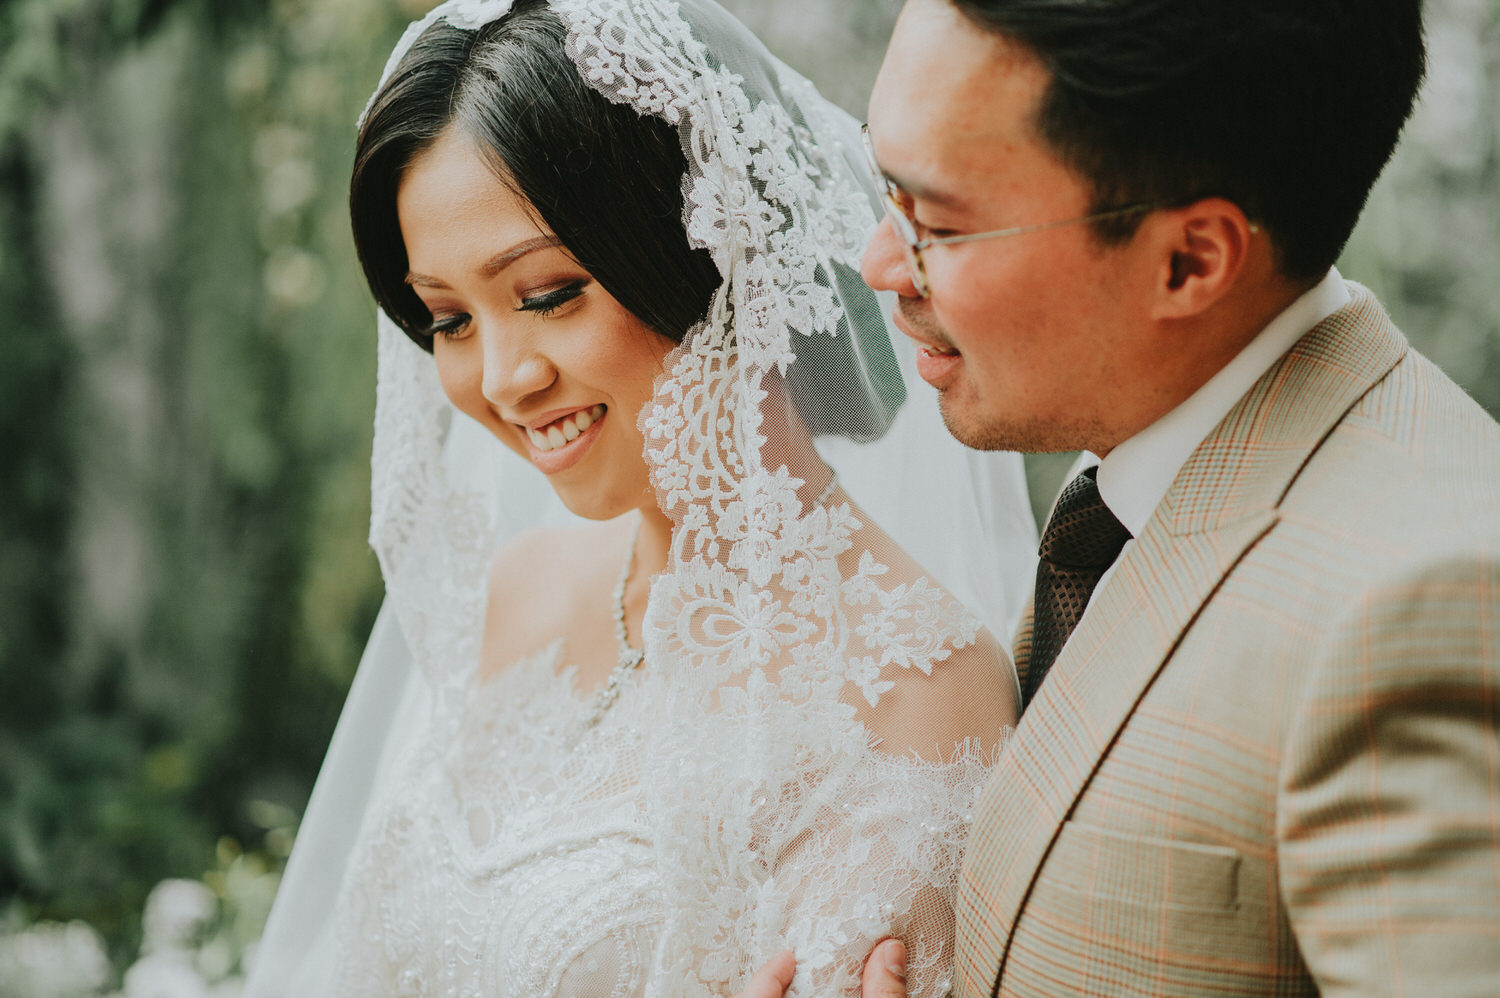 jakarta wedding-destination wedding-bali wedding photographer-diktatphotography-kadek artayasa-jason+devi-126